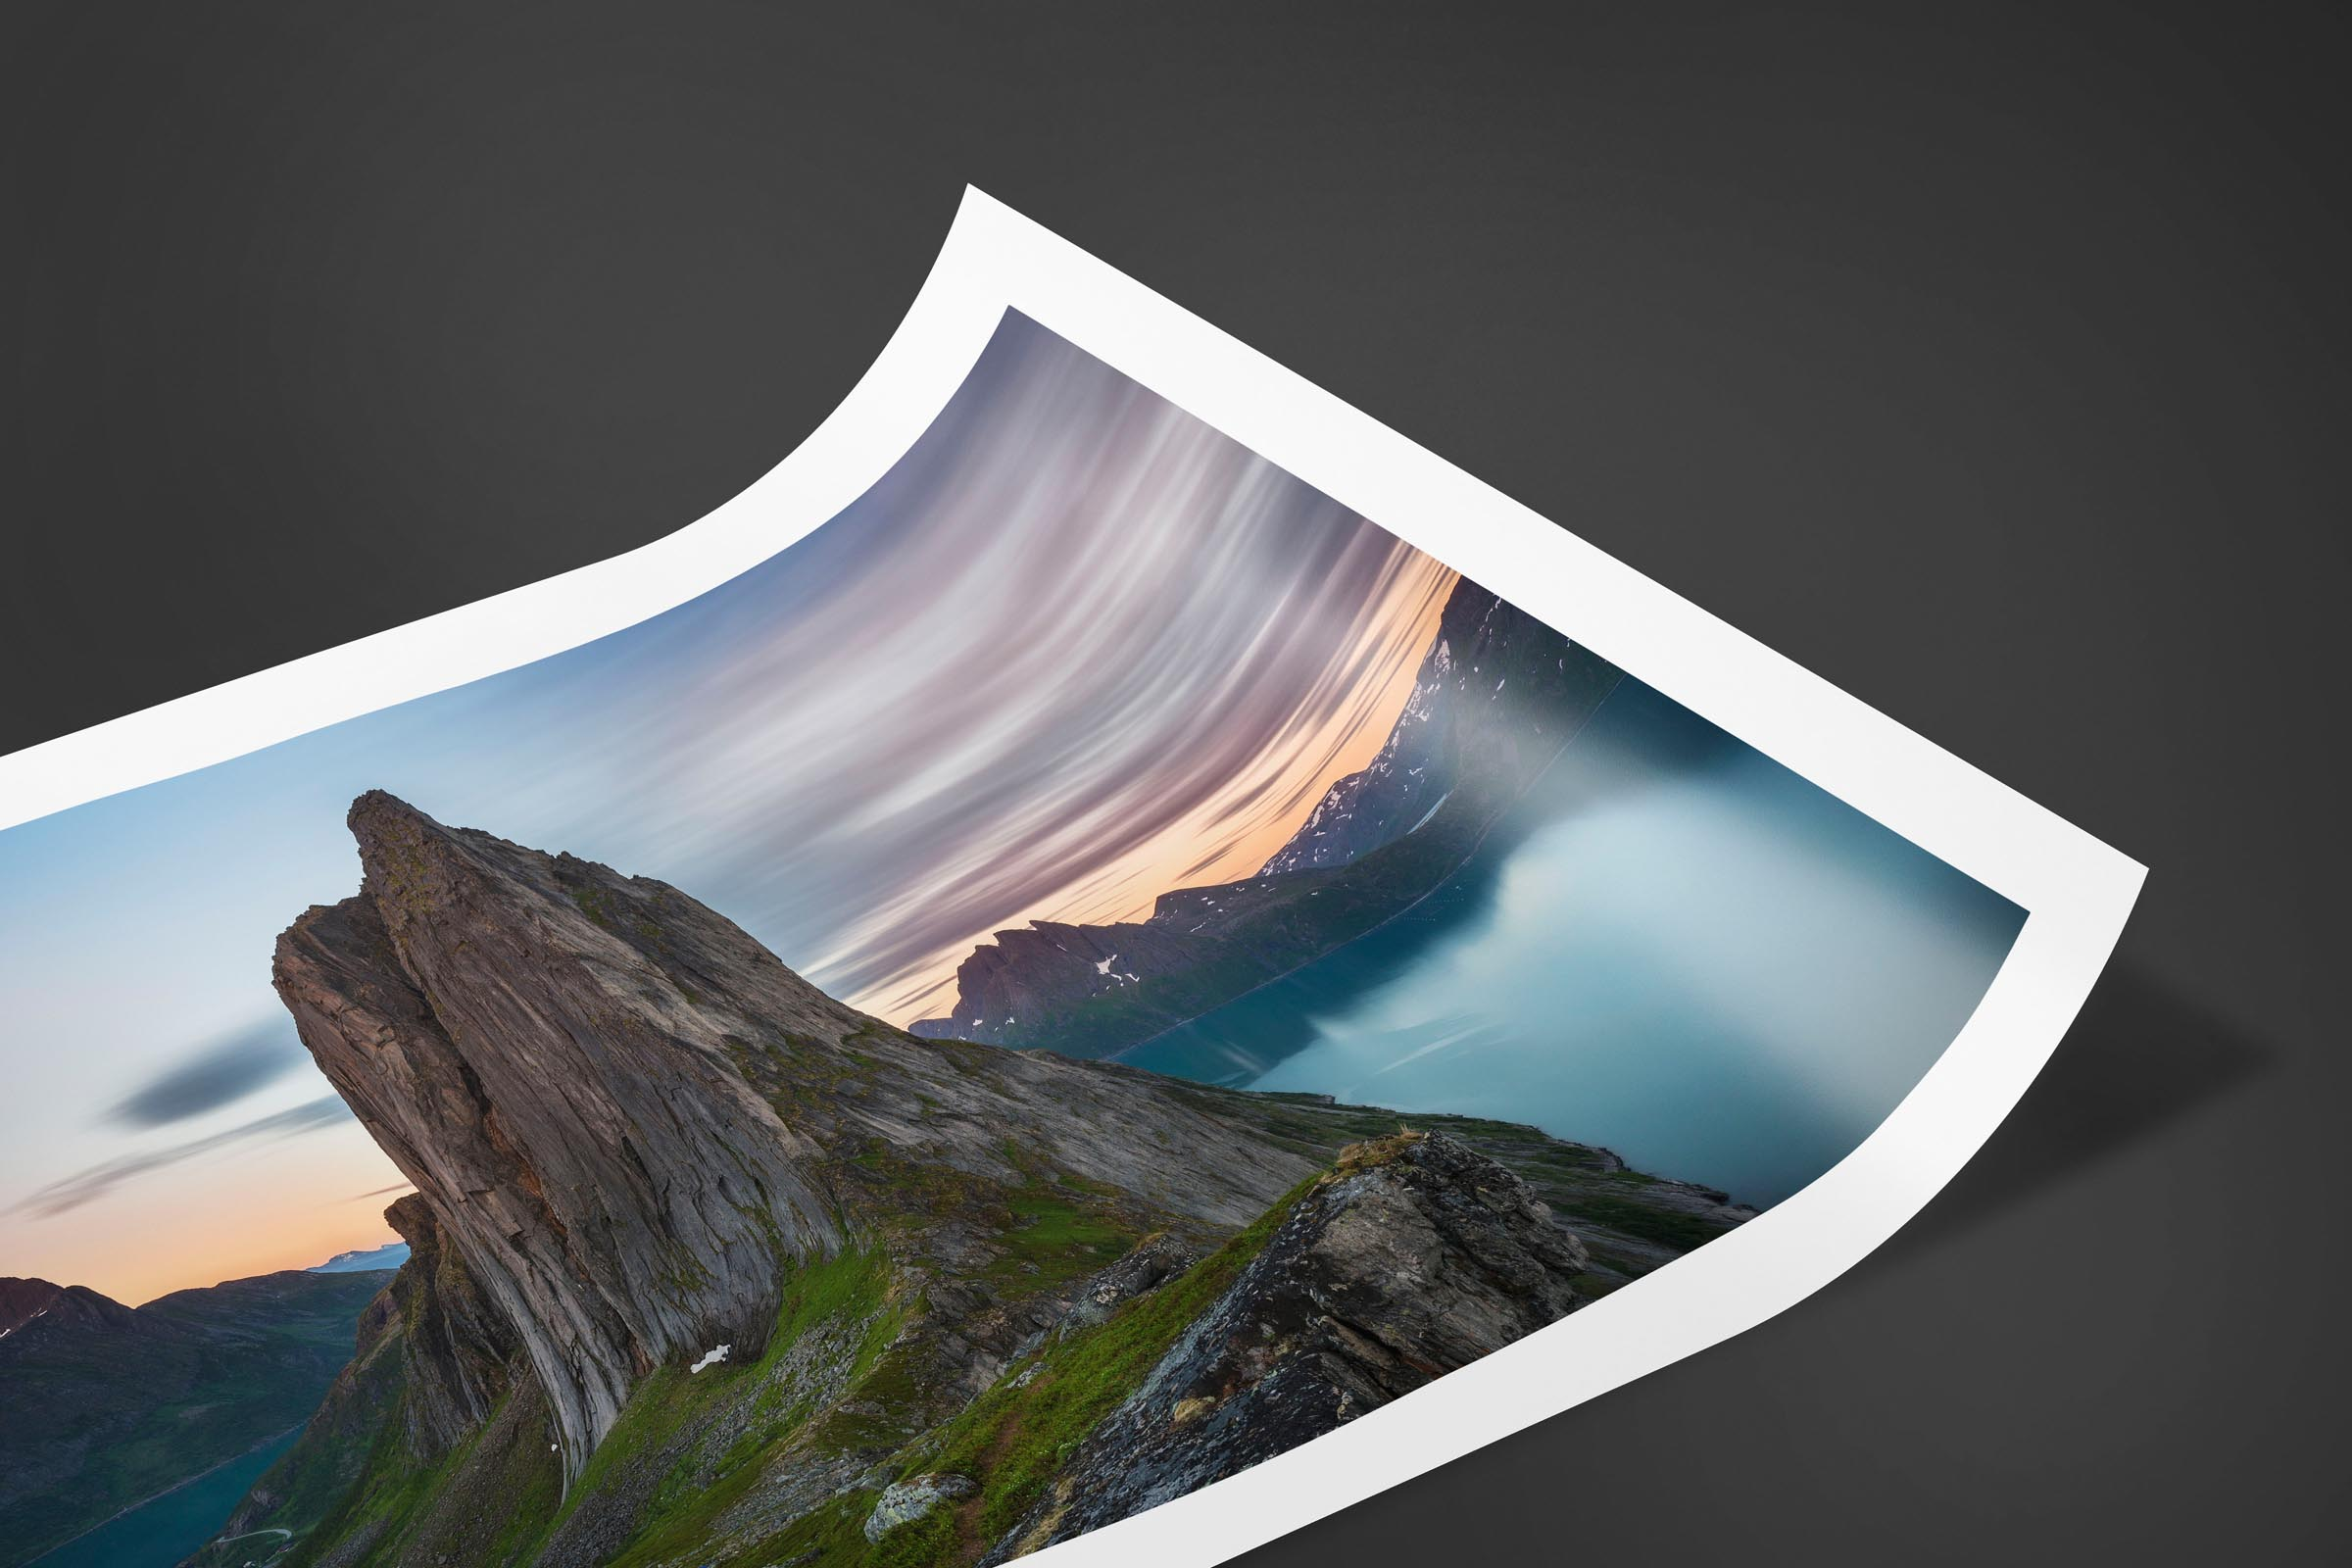 Fine art limited edition print of Segla Mountain in Senja, Norway by Brent Goldman Photography